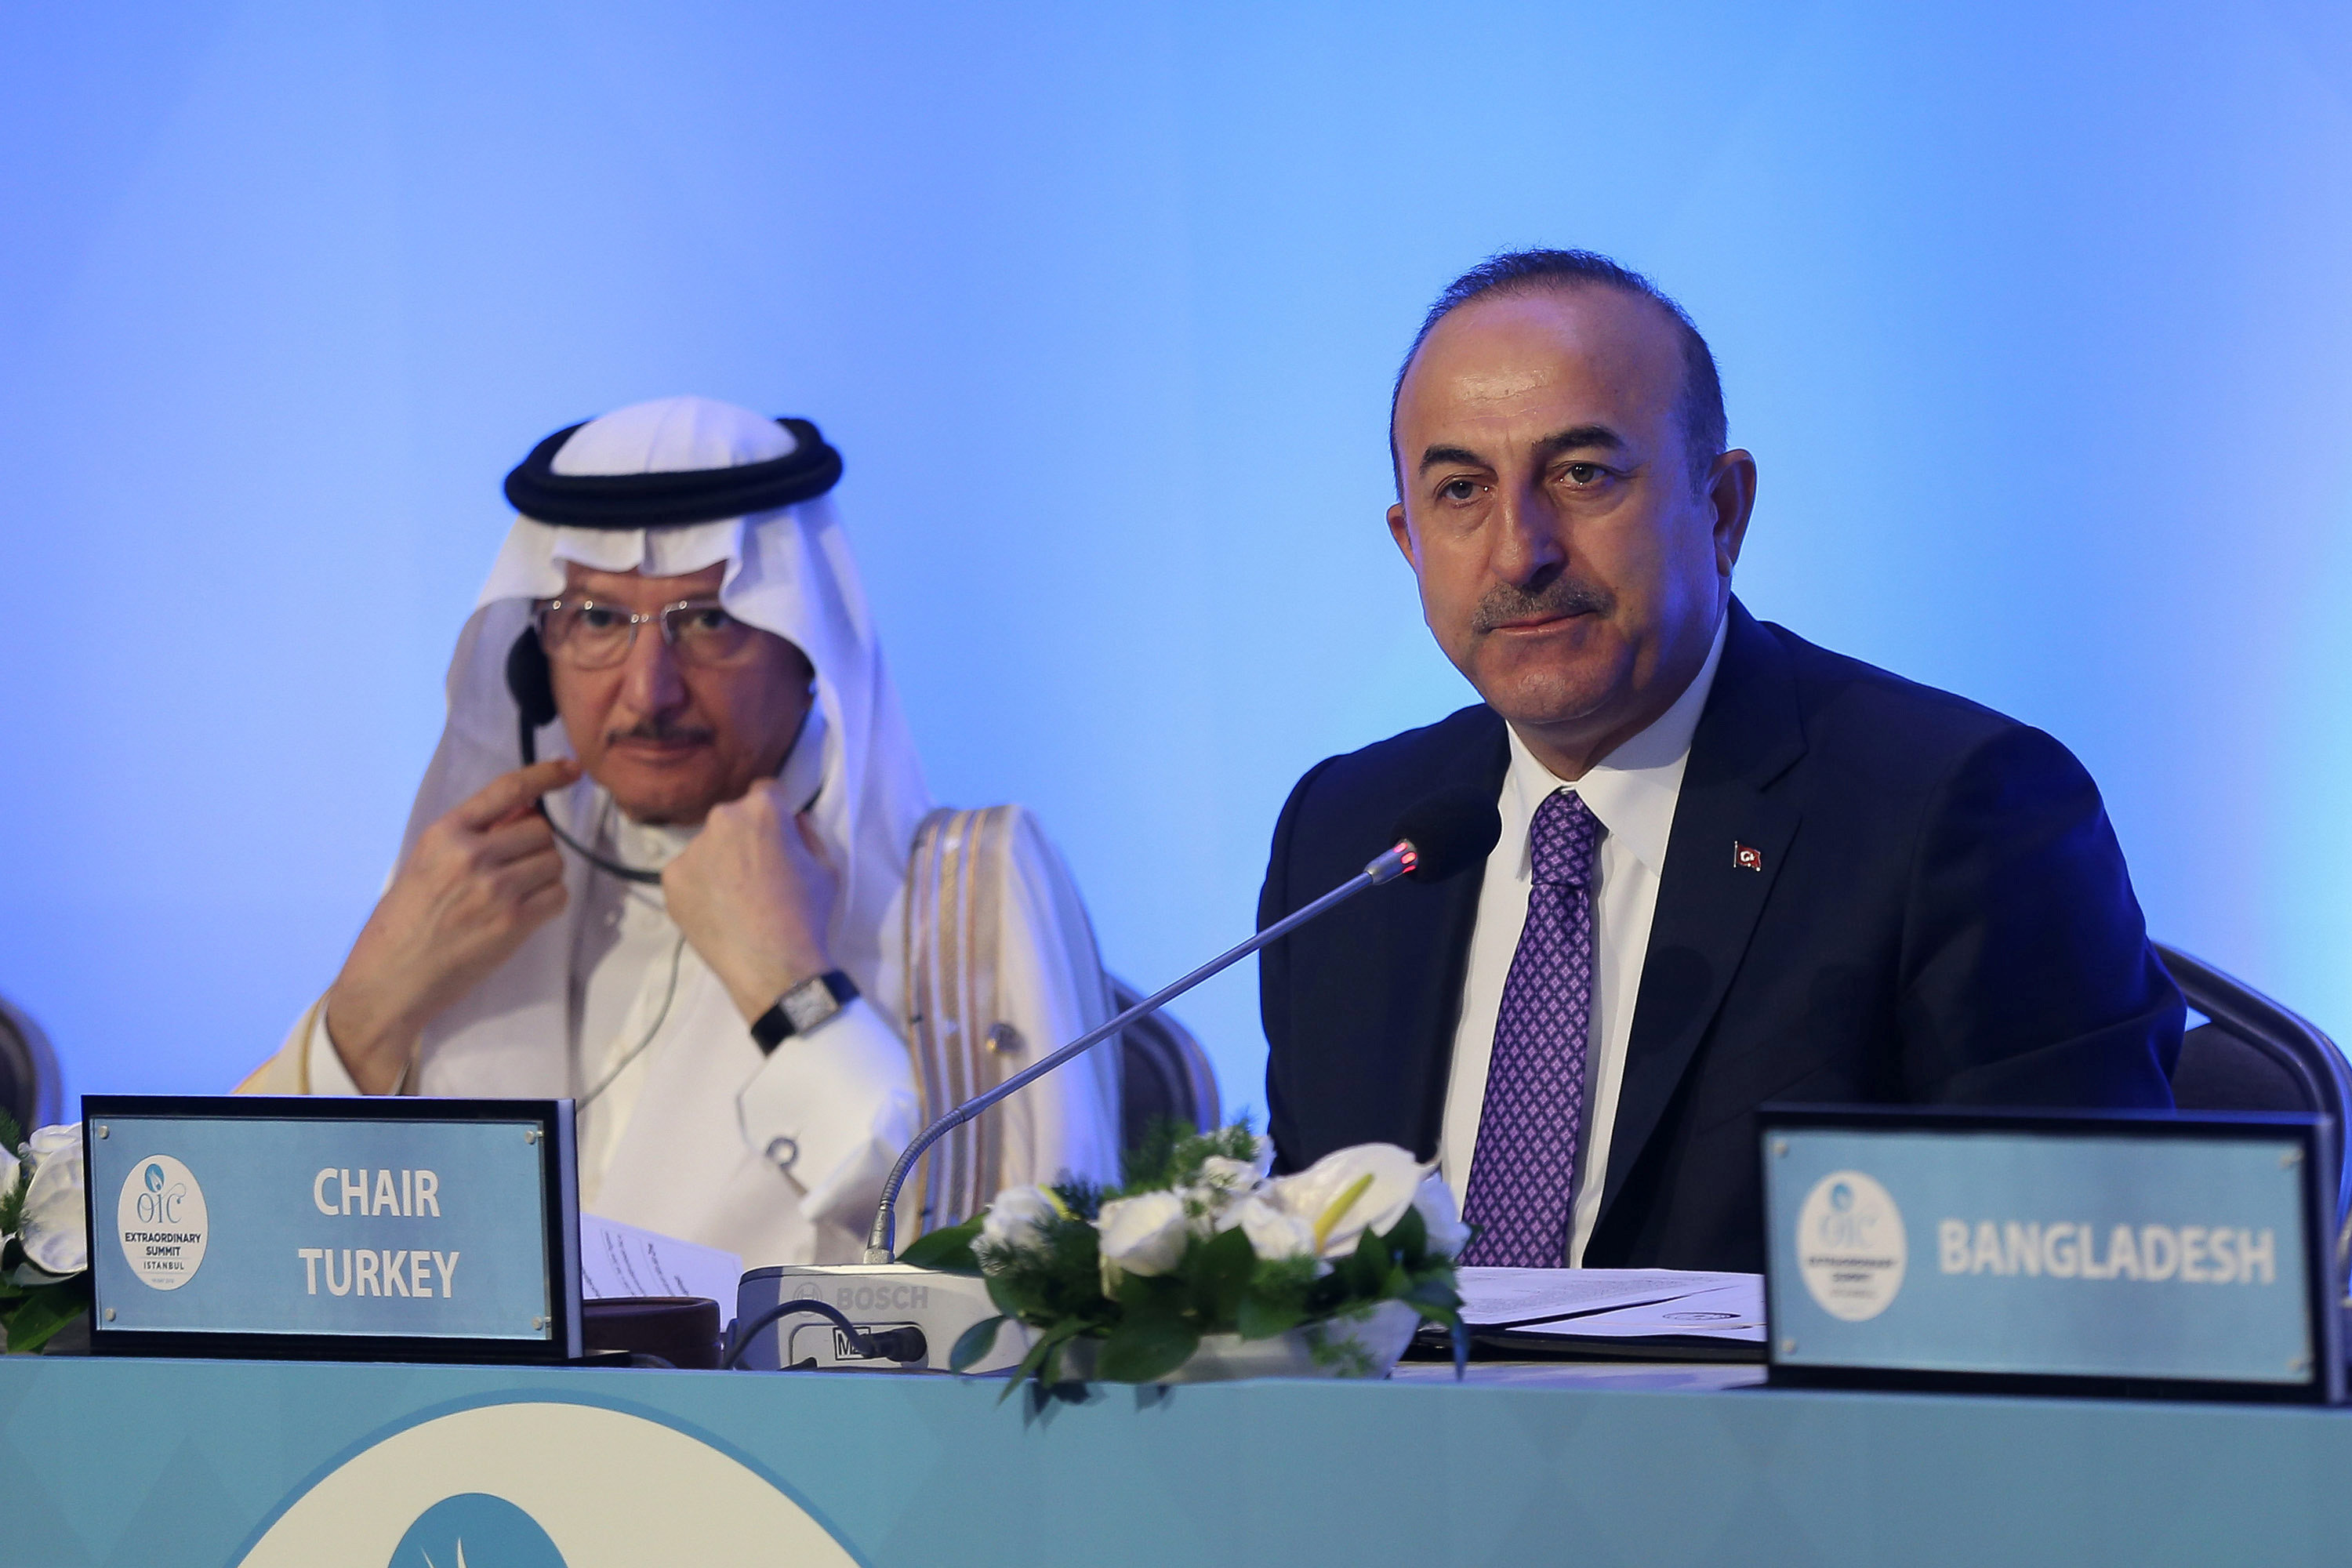 Turkish Foreign Minister Mevlut Cavusoglu and Secretary General of Organization of Islamic Cooperation (OIC) Yousef bin Ahmad Al-Othaimeen are seen during a meeting of the OIC Foreign Ministers Council in Istanbul, Turkey May 18, 2018. Hudaverdi Arif Yaman/Pool via Reuters